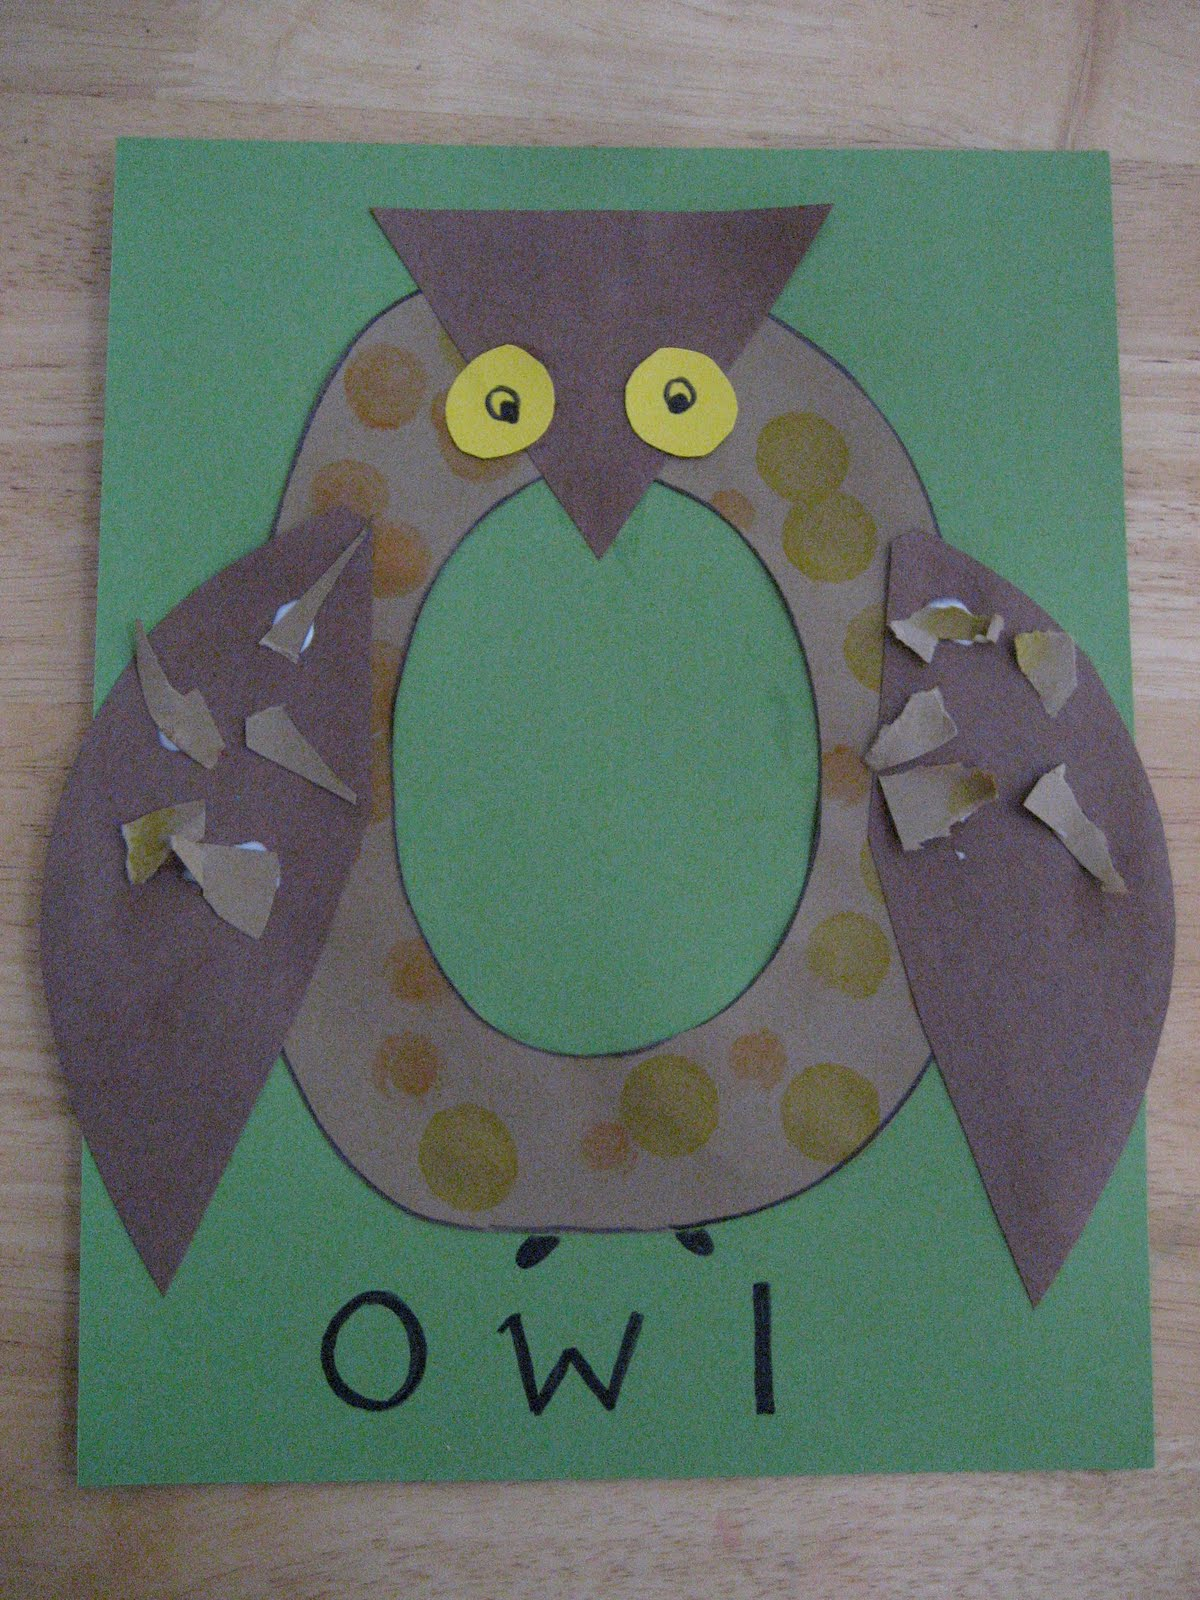 Toddler approved textured letter o owl for Letter o crafts for preschool